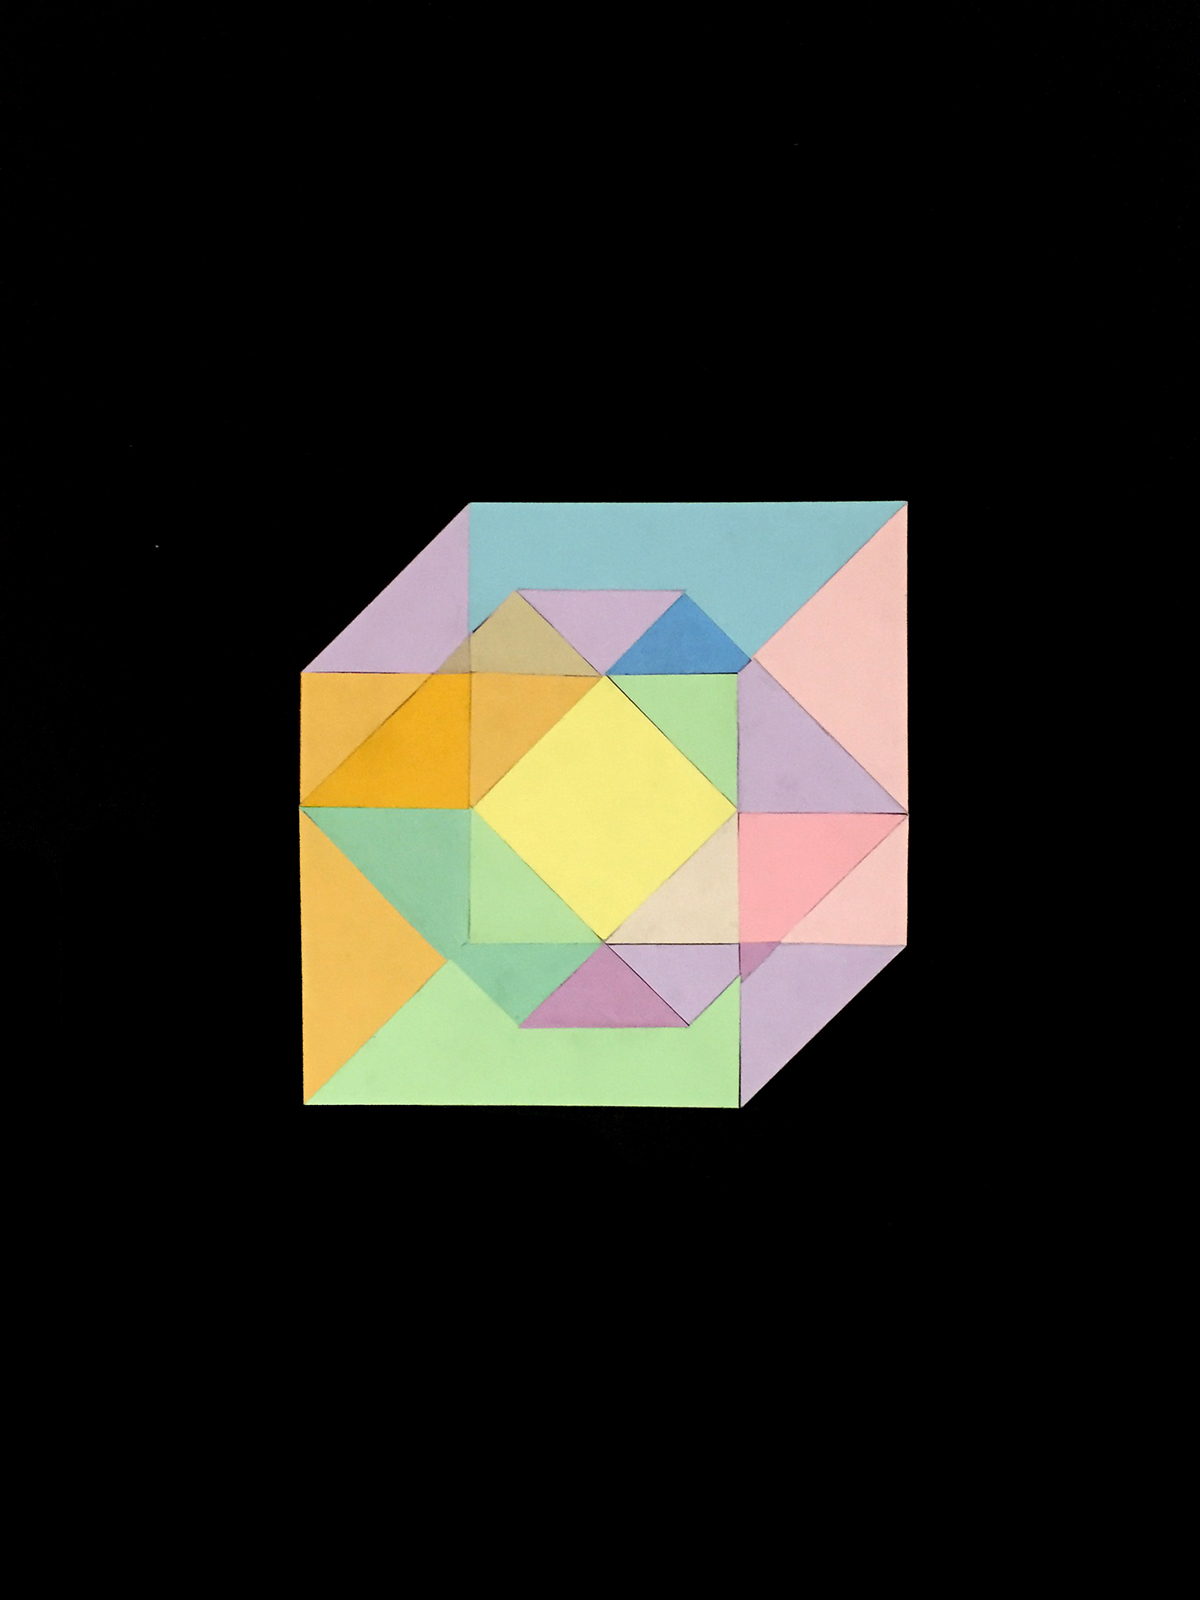 Transparency Spatial Illusion On Behance